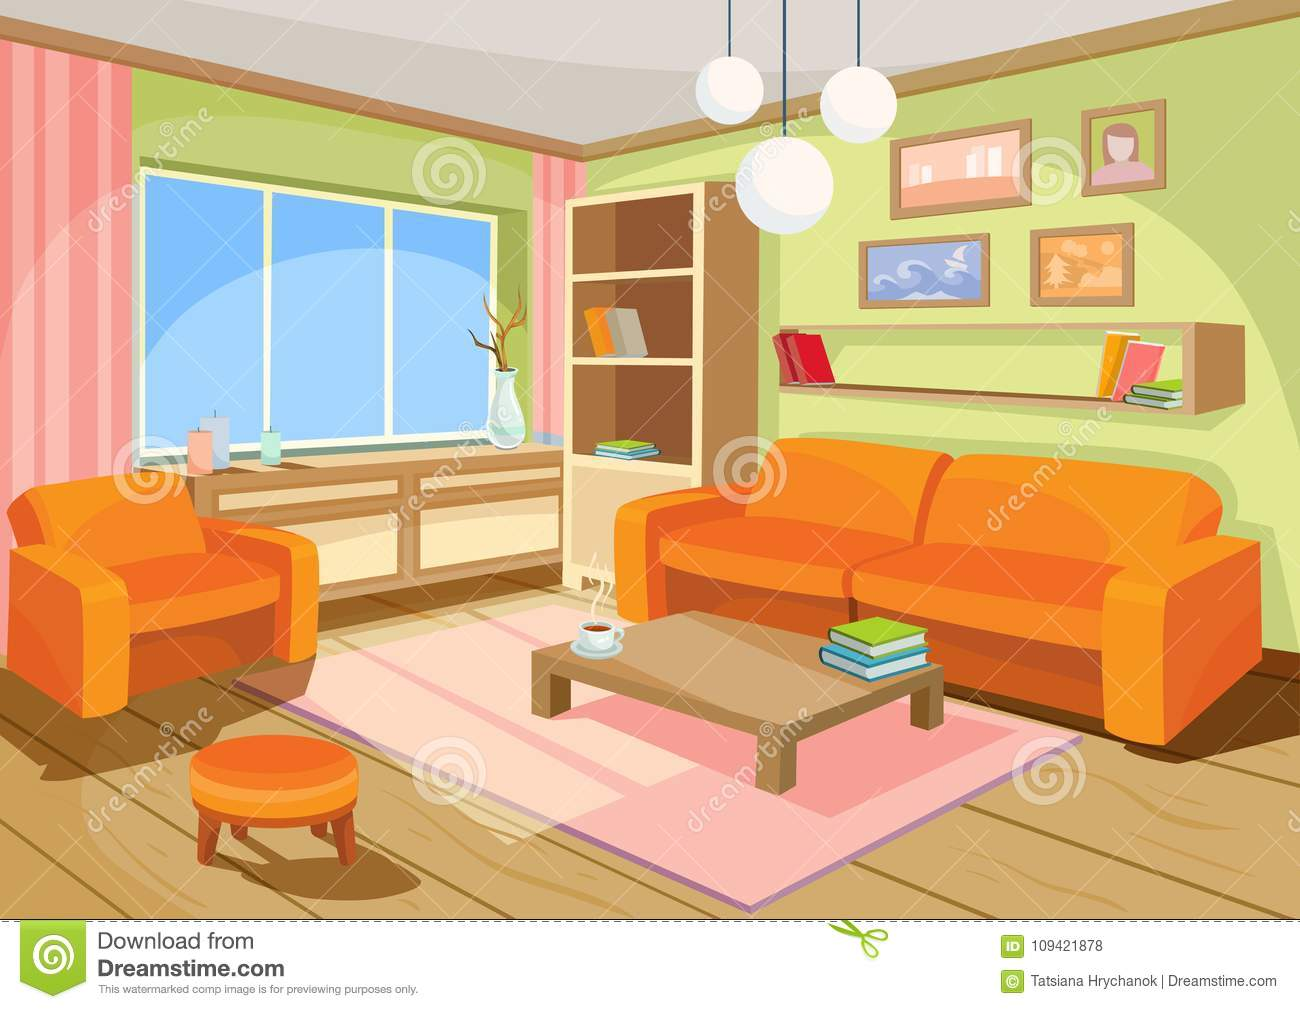 Illustration of a cozy cartoon interior of a home room a living room stock illustration for Cartoon picture of a living room